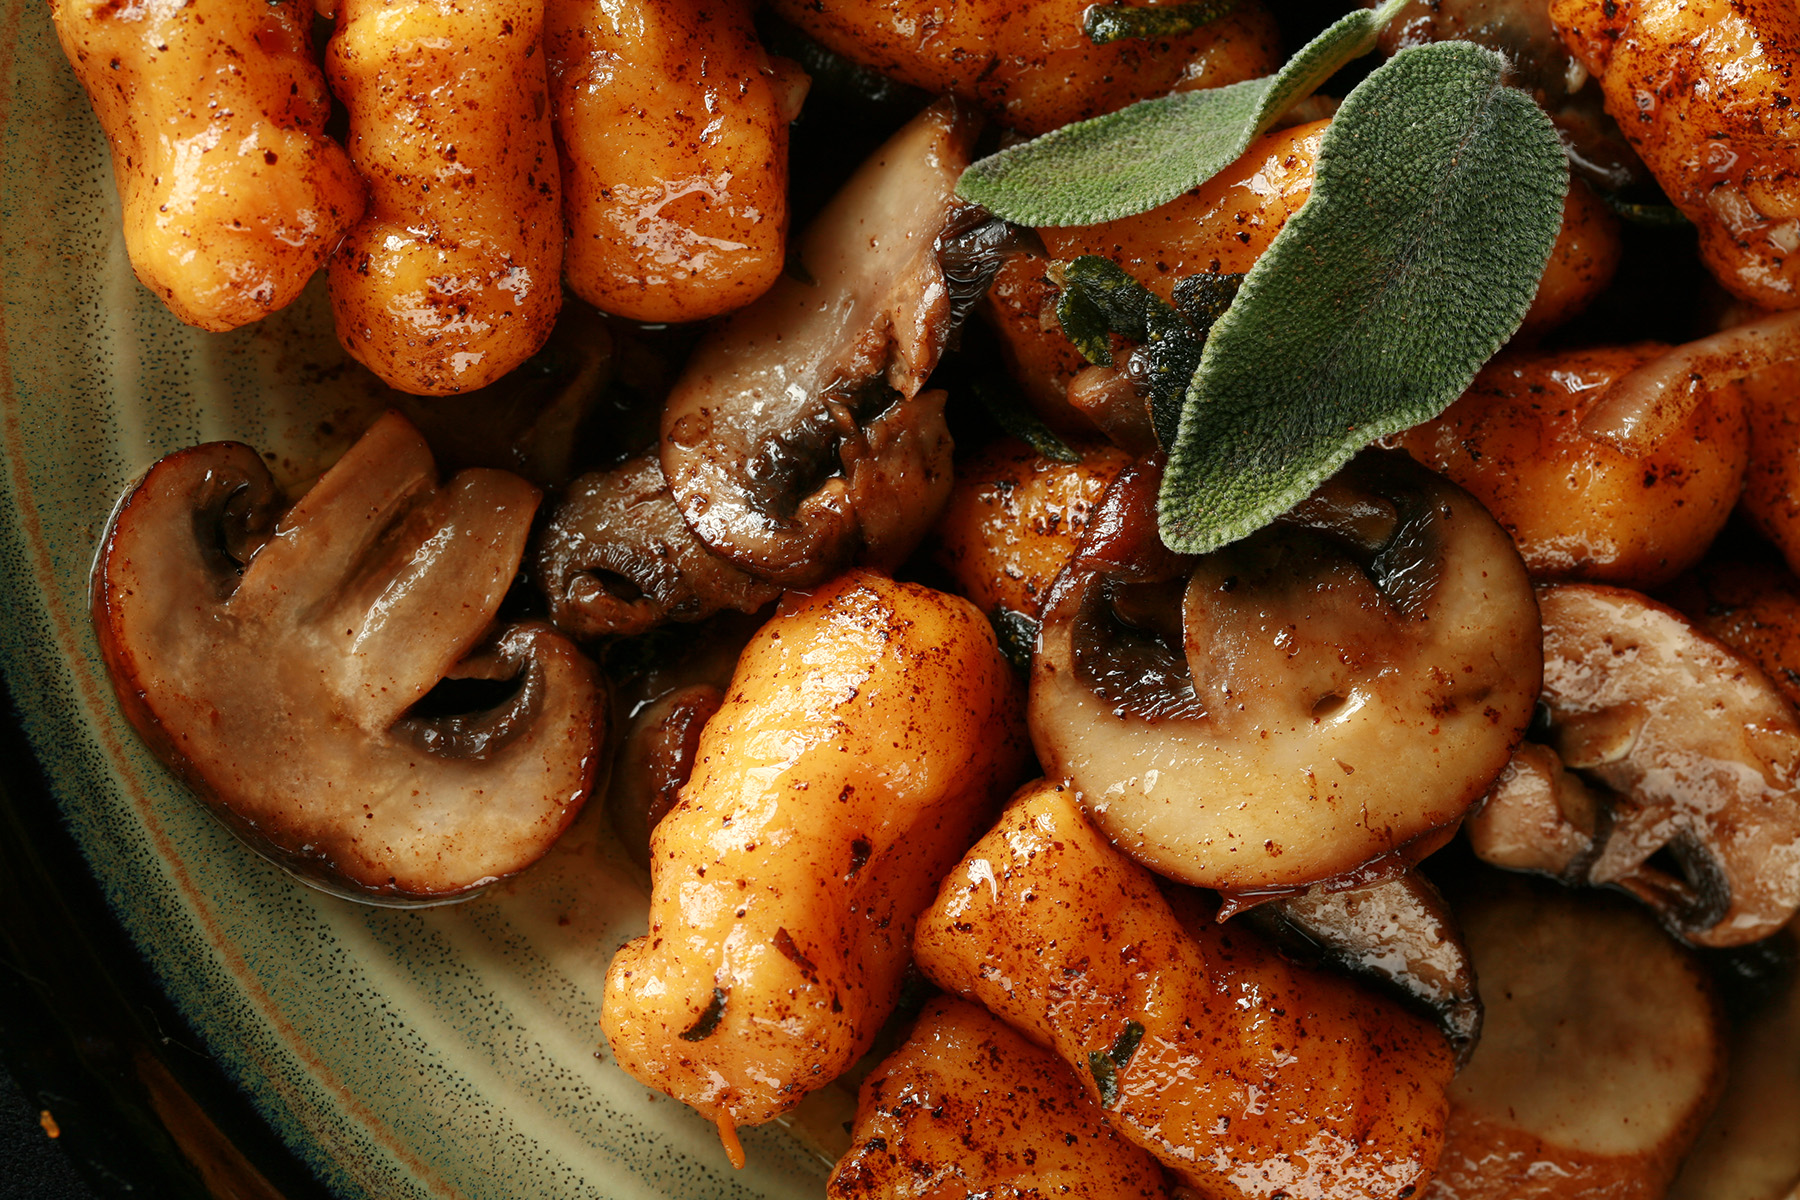 Close up view of AIP sweet potato gnocchi with mushrooms and sage.